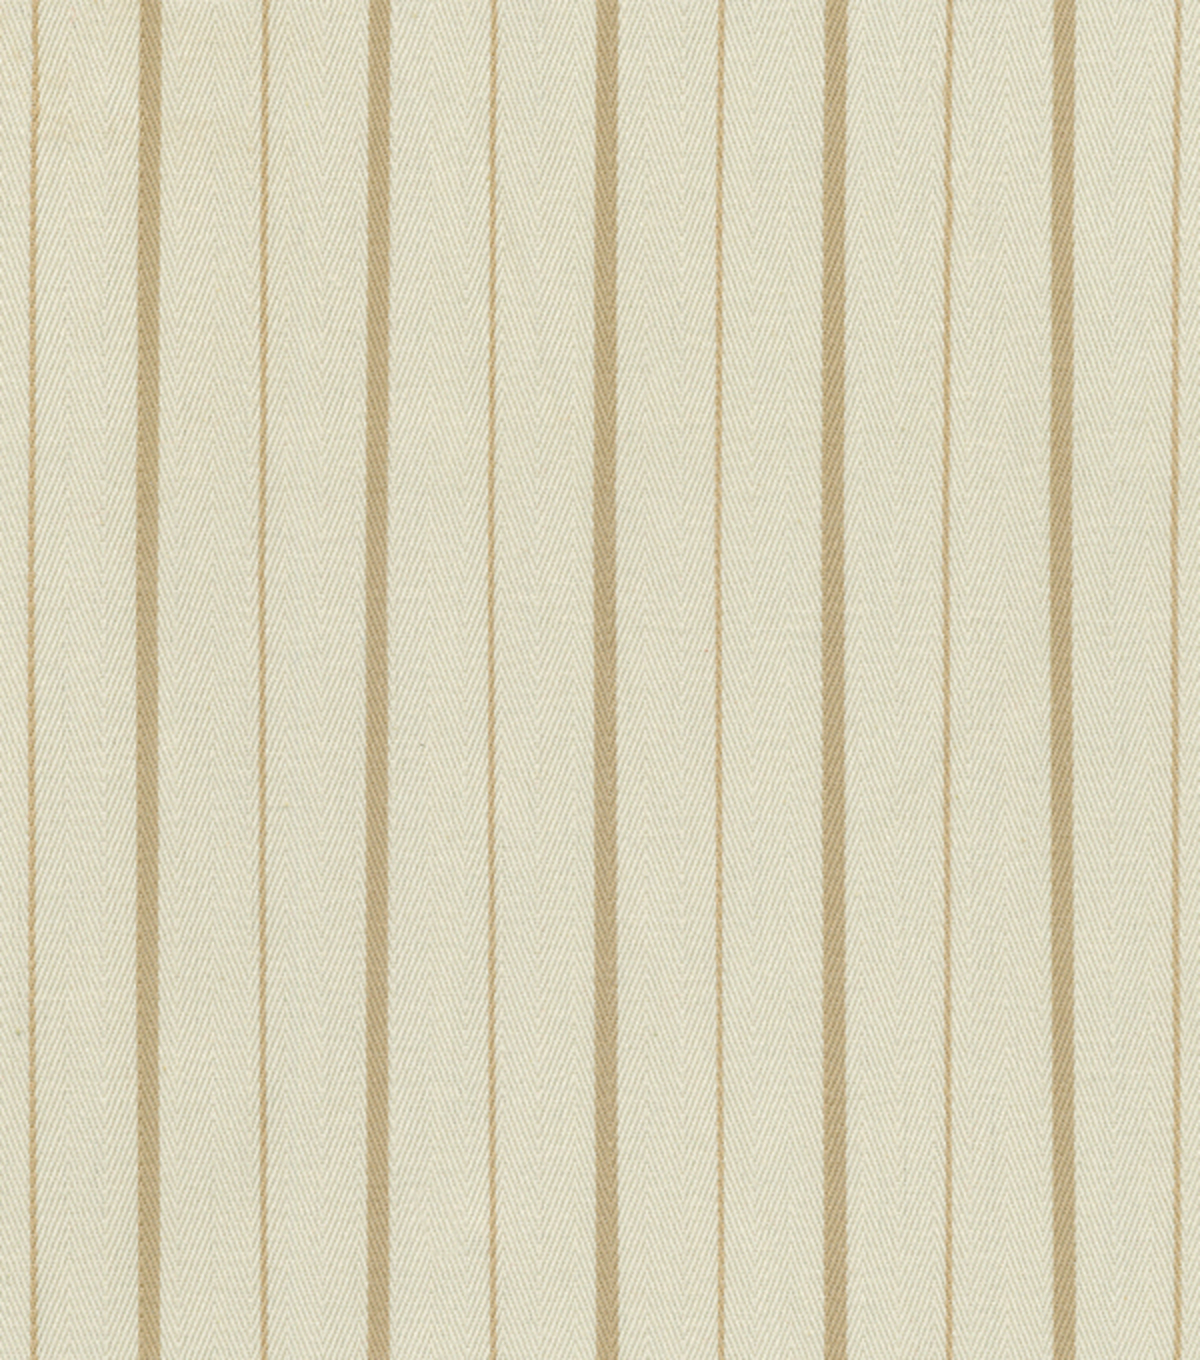 Home Decor 8\u0022x8\u0022 Fabric Swatch-Covington Birmingham